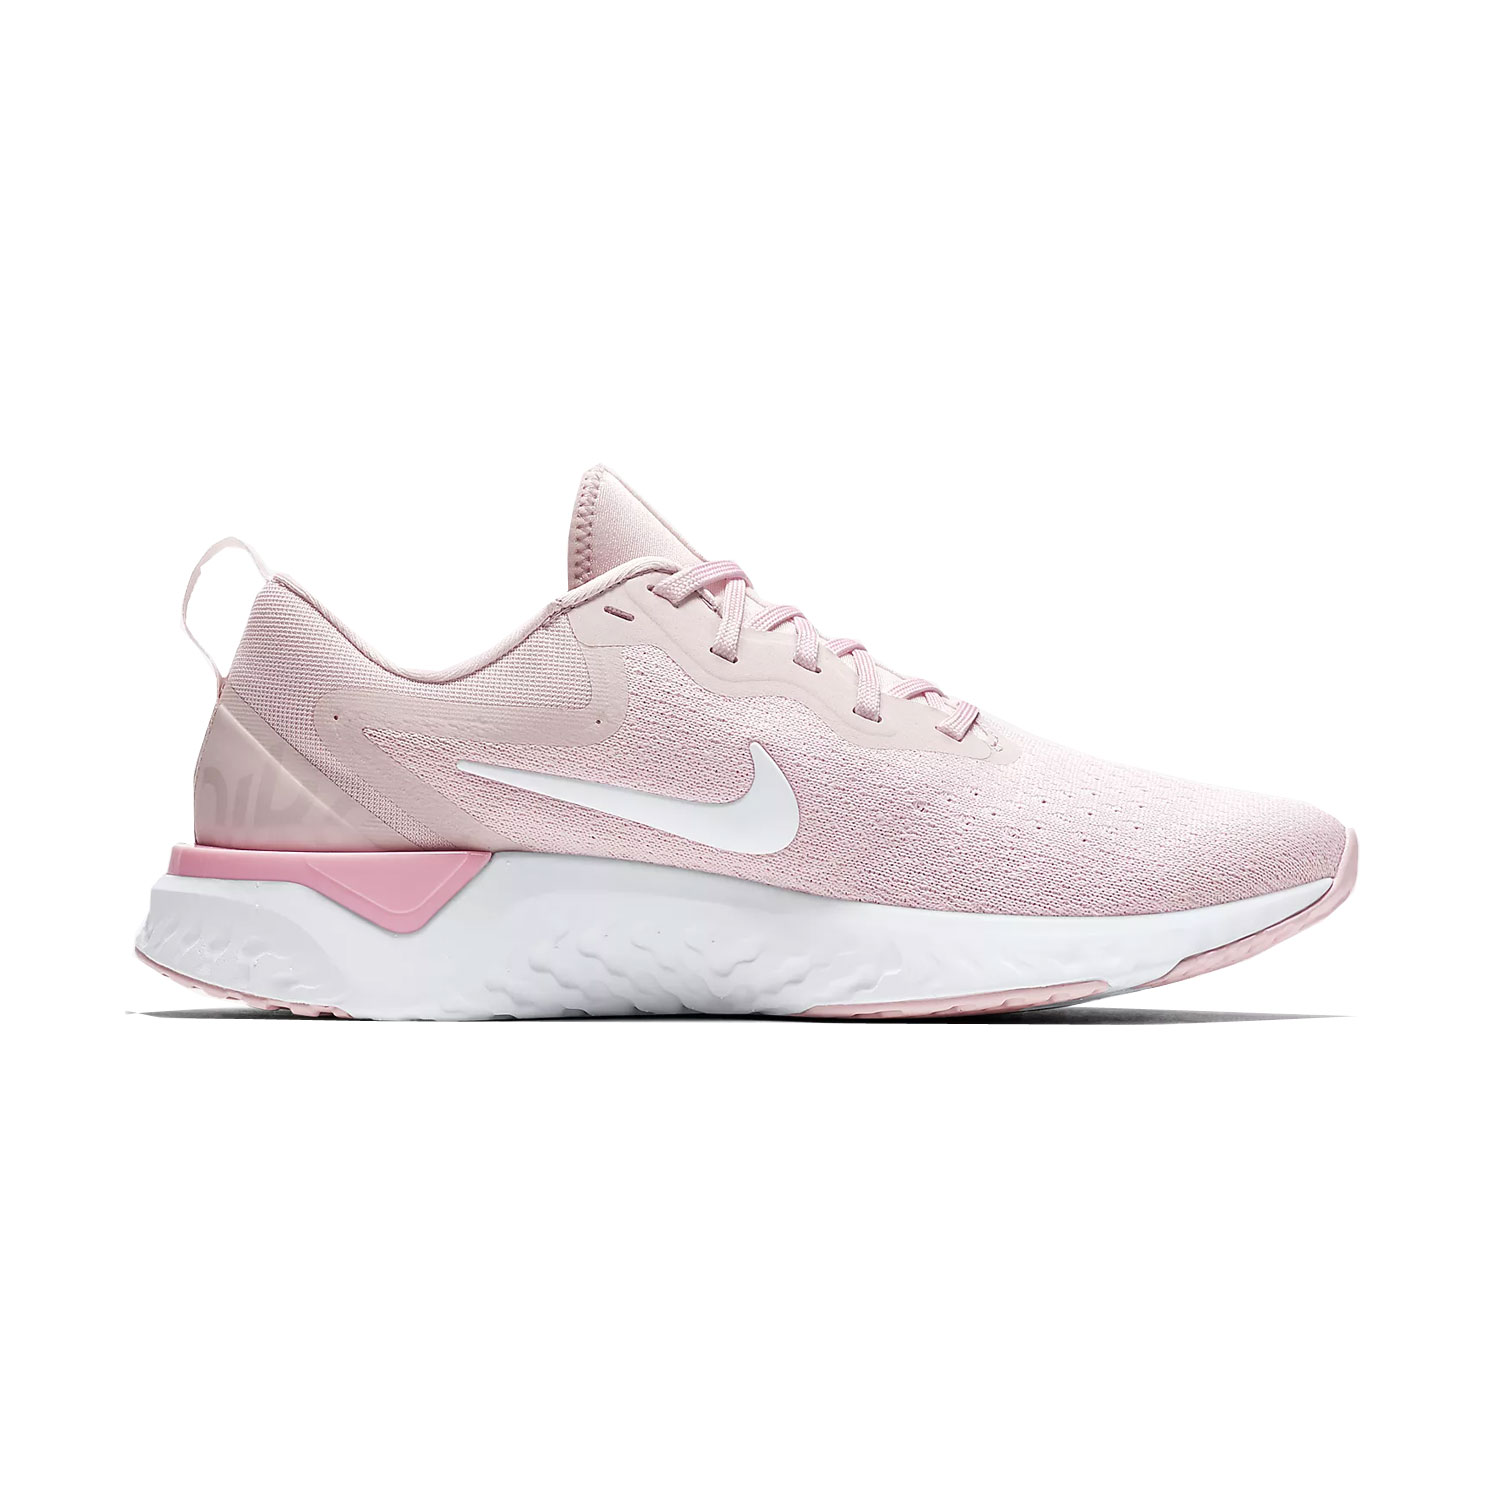 b554f7a3f342 Nike Women s Glide React Running Shoes- Arctic Pink